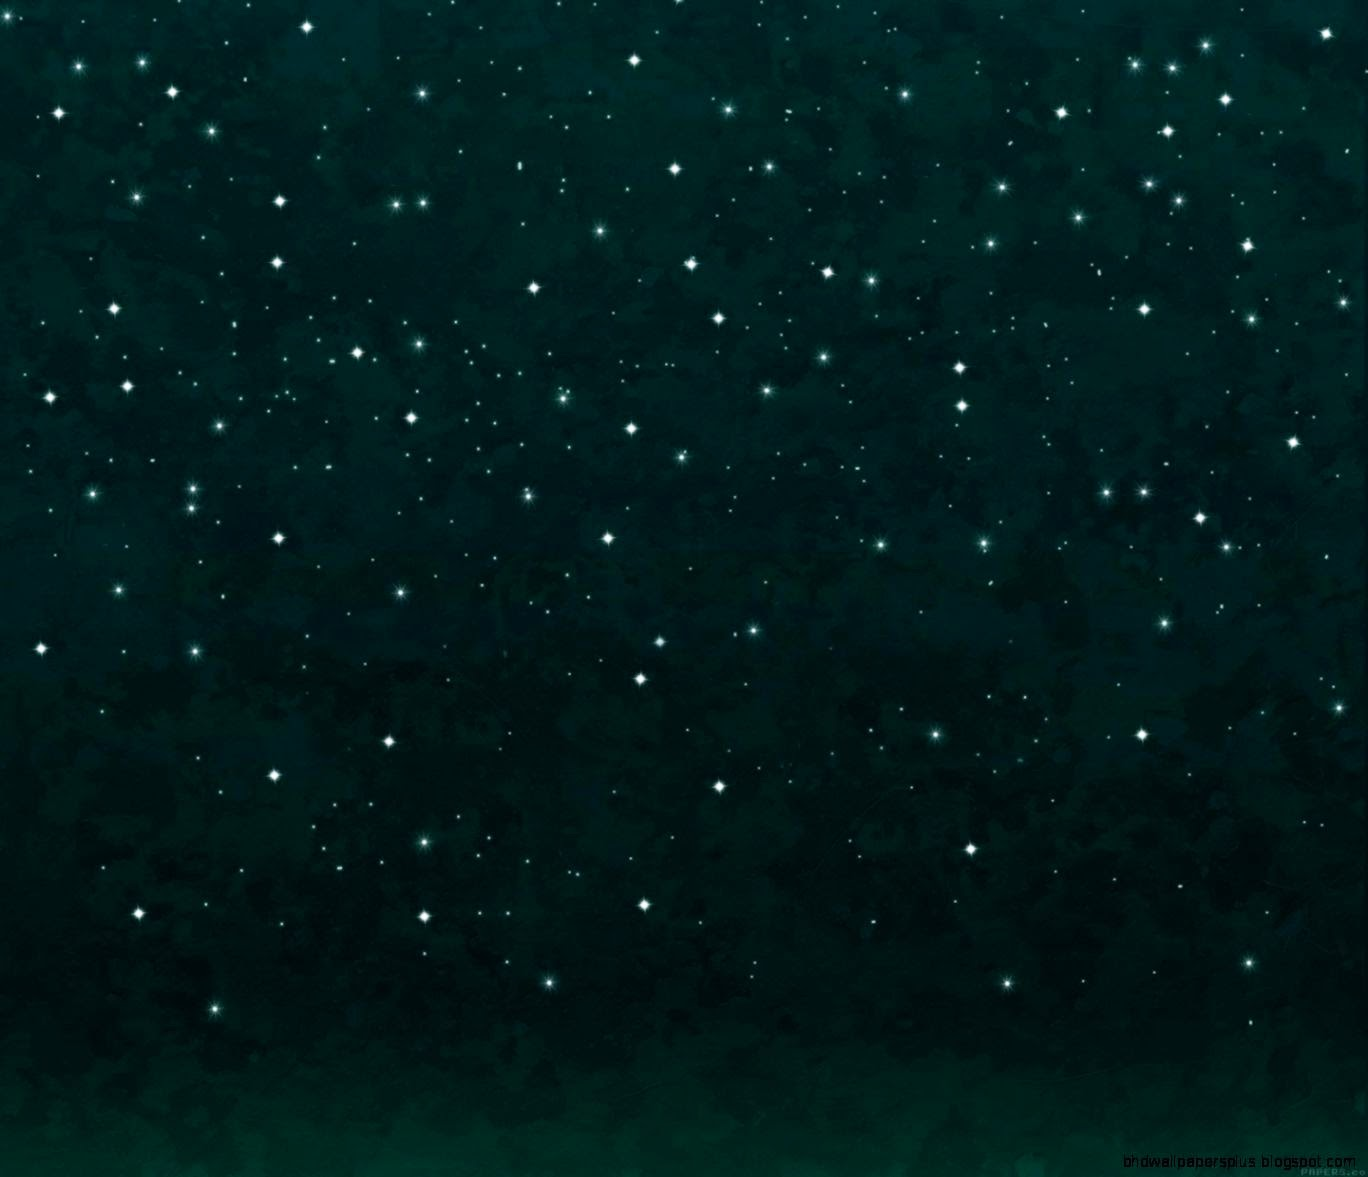 ag19 stars shining green night space art